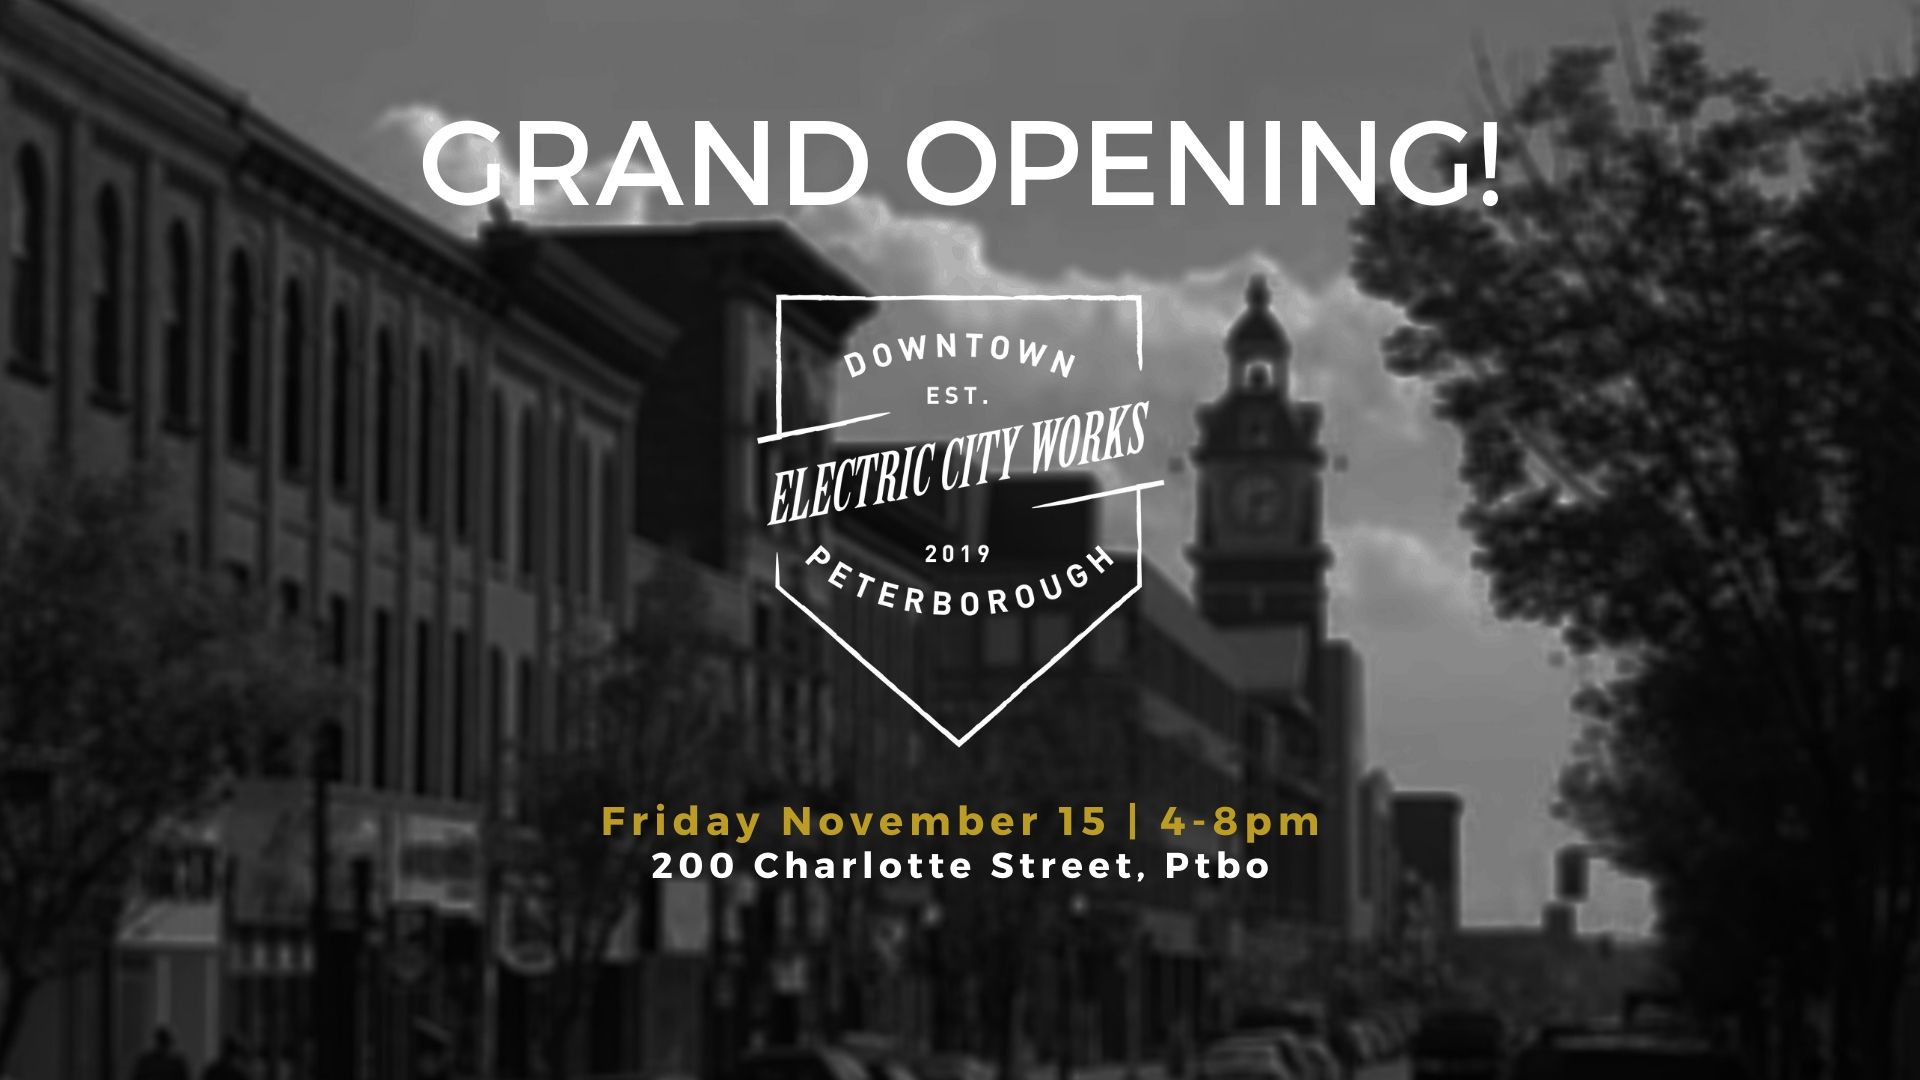 Grand Opening Electric City Works